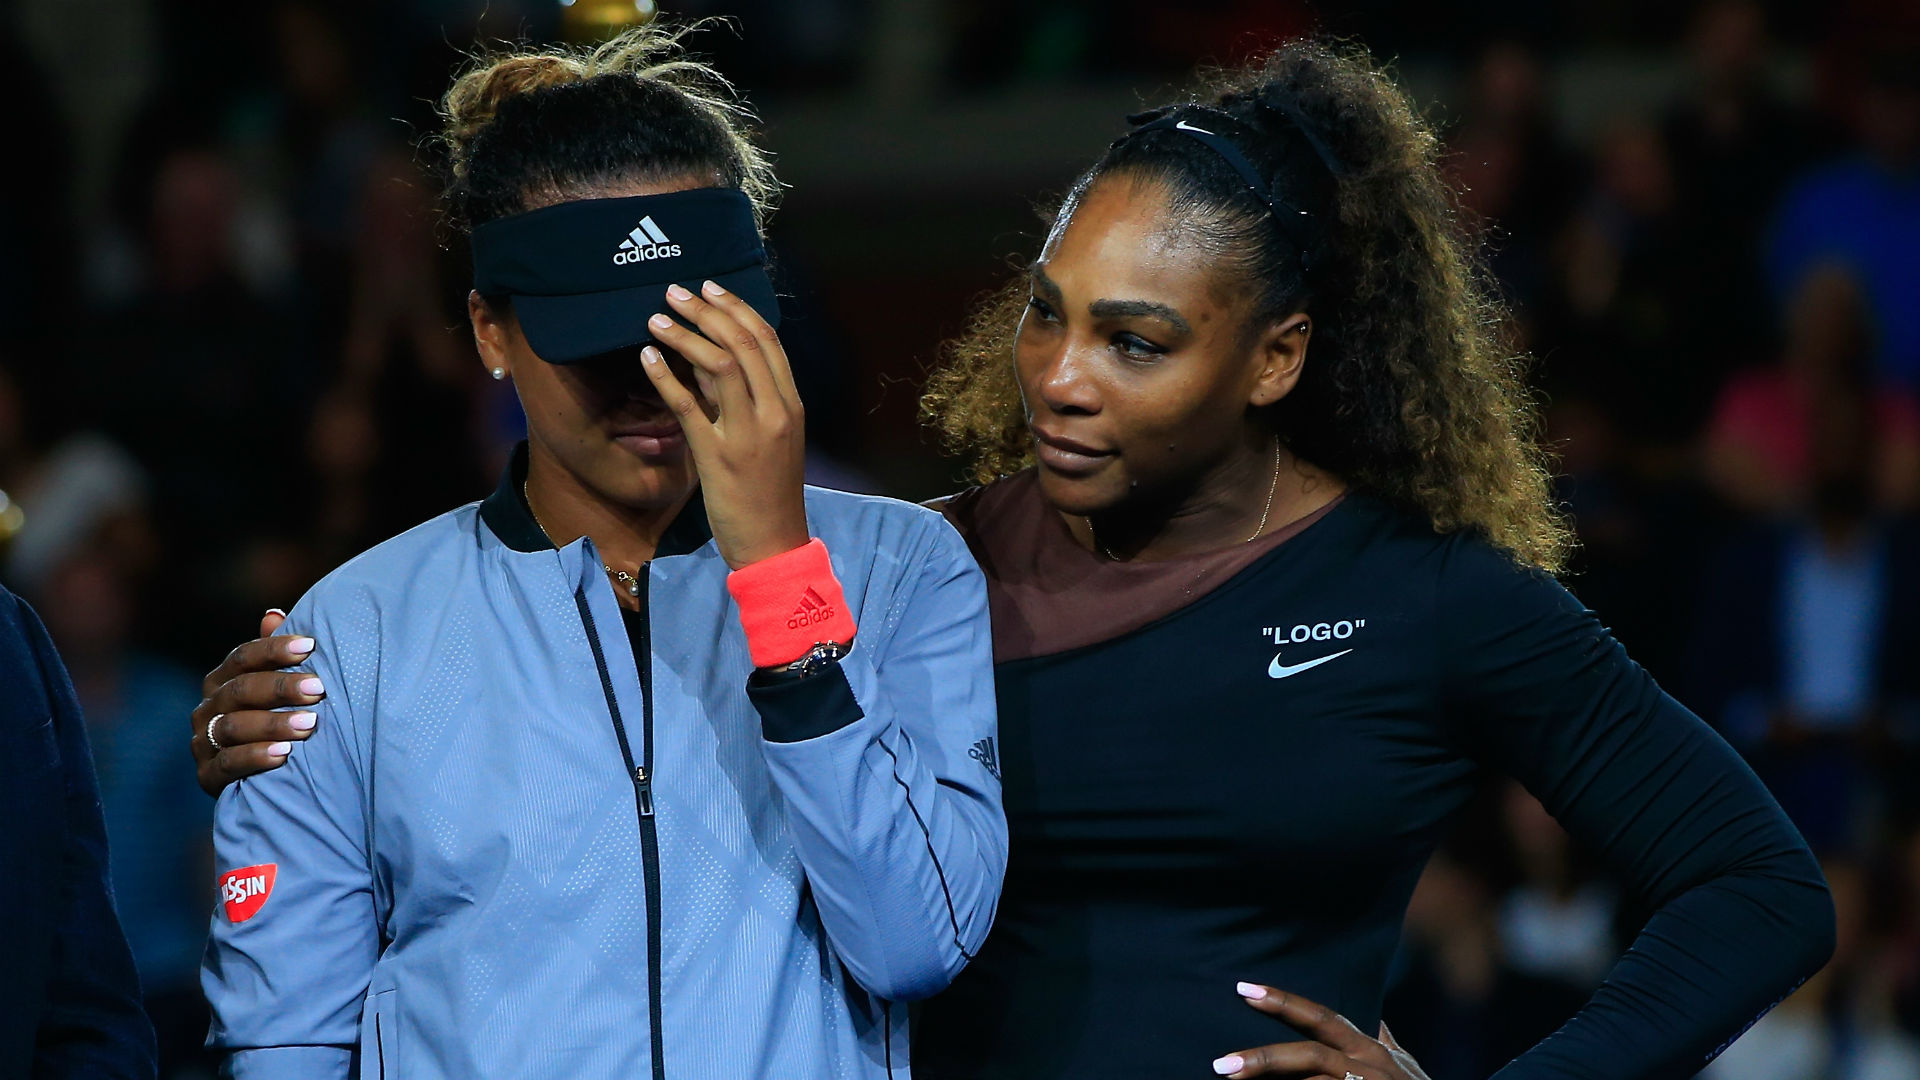 US Open 2018: USTA president hails Serena Williams' post-match 'class', despite umpire row ...